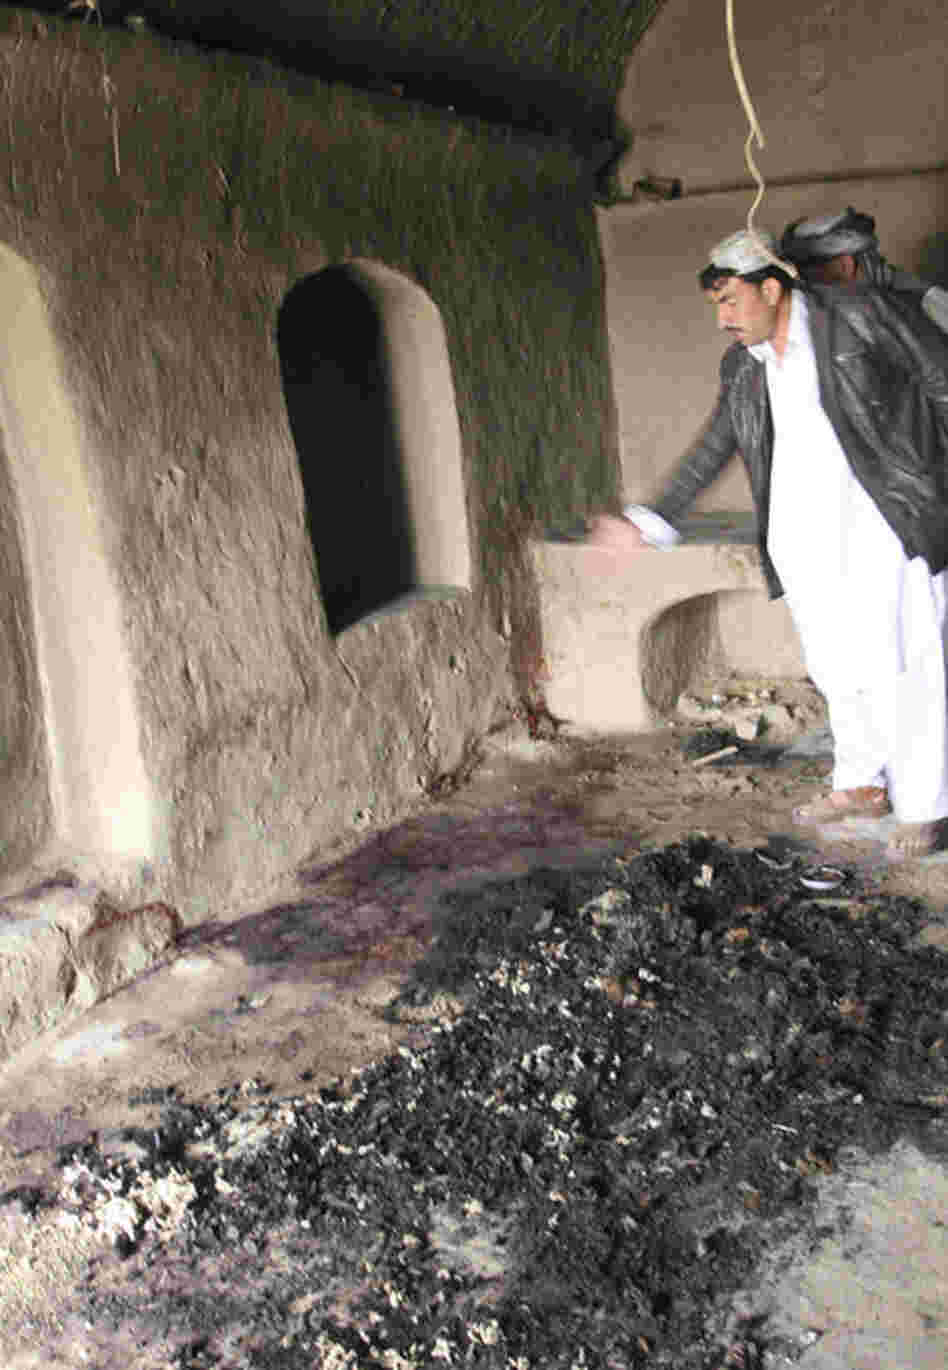 Bloodstains mark the spot where the villagers were allegedly shot. The attack took place in two villages in the Panjwai district of southern Kandahar province.